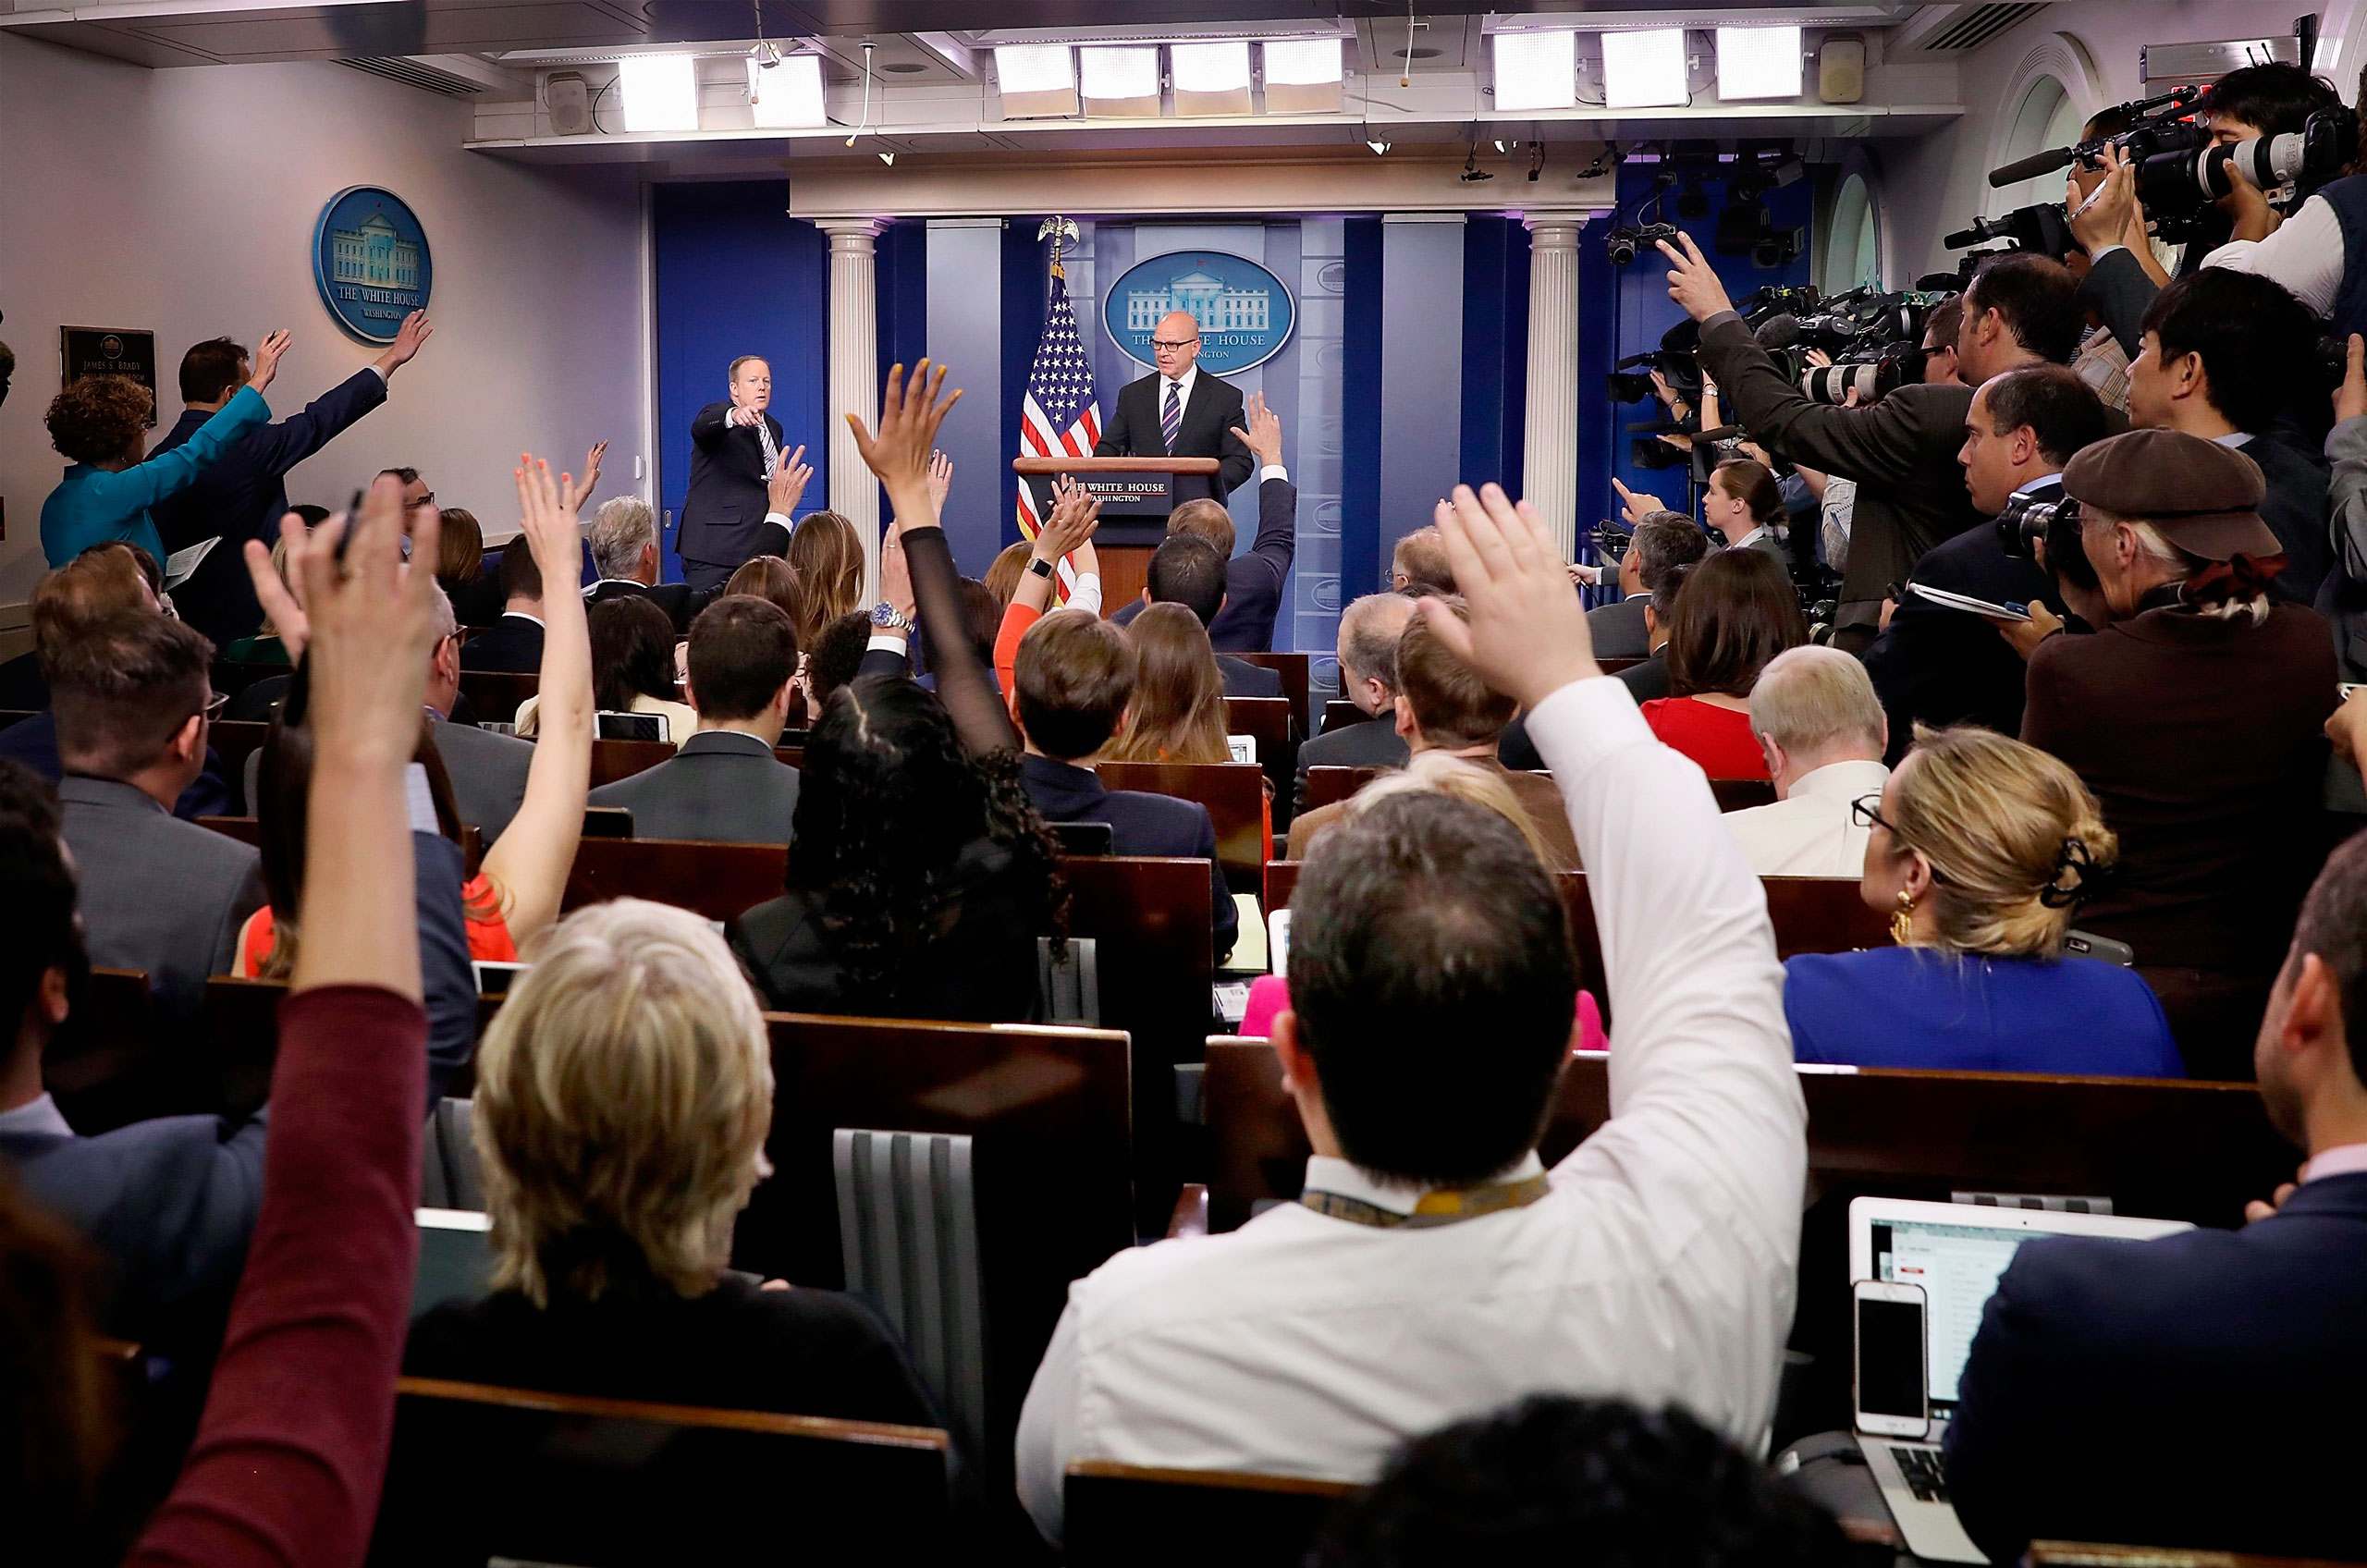 McMaster at the briefing-room podium, defending Trump's decision to share intelligence with Russia